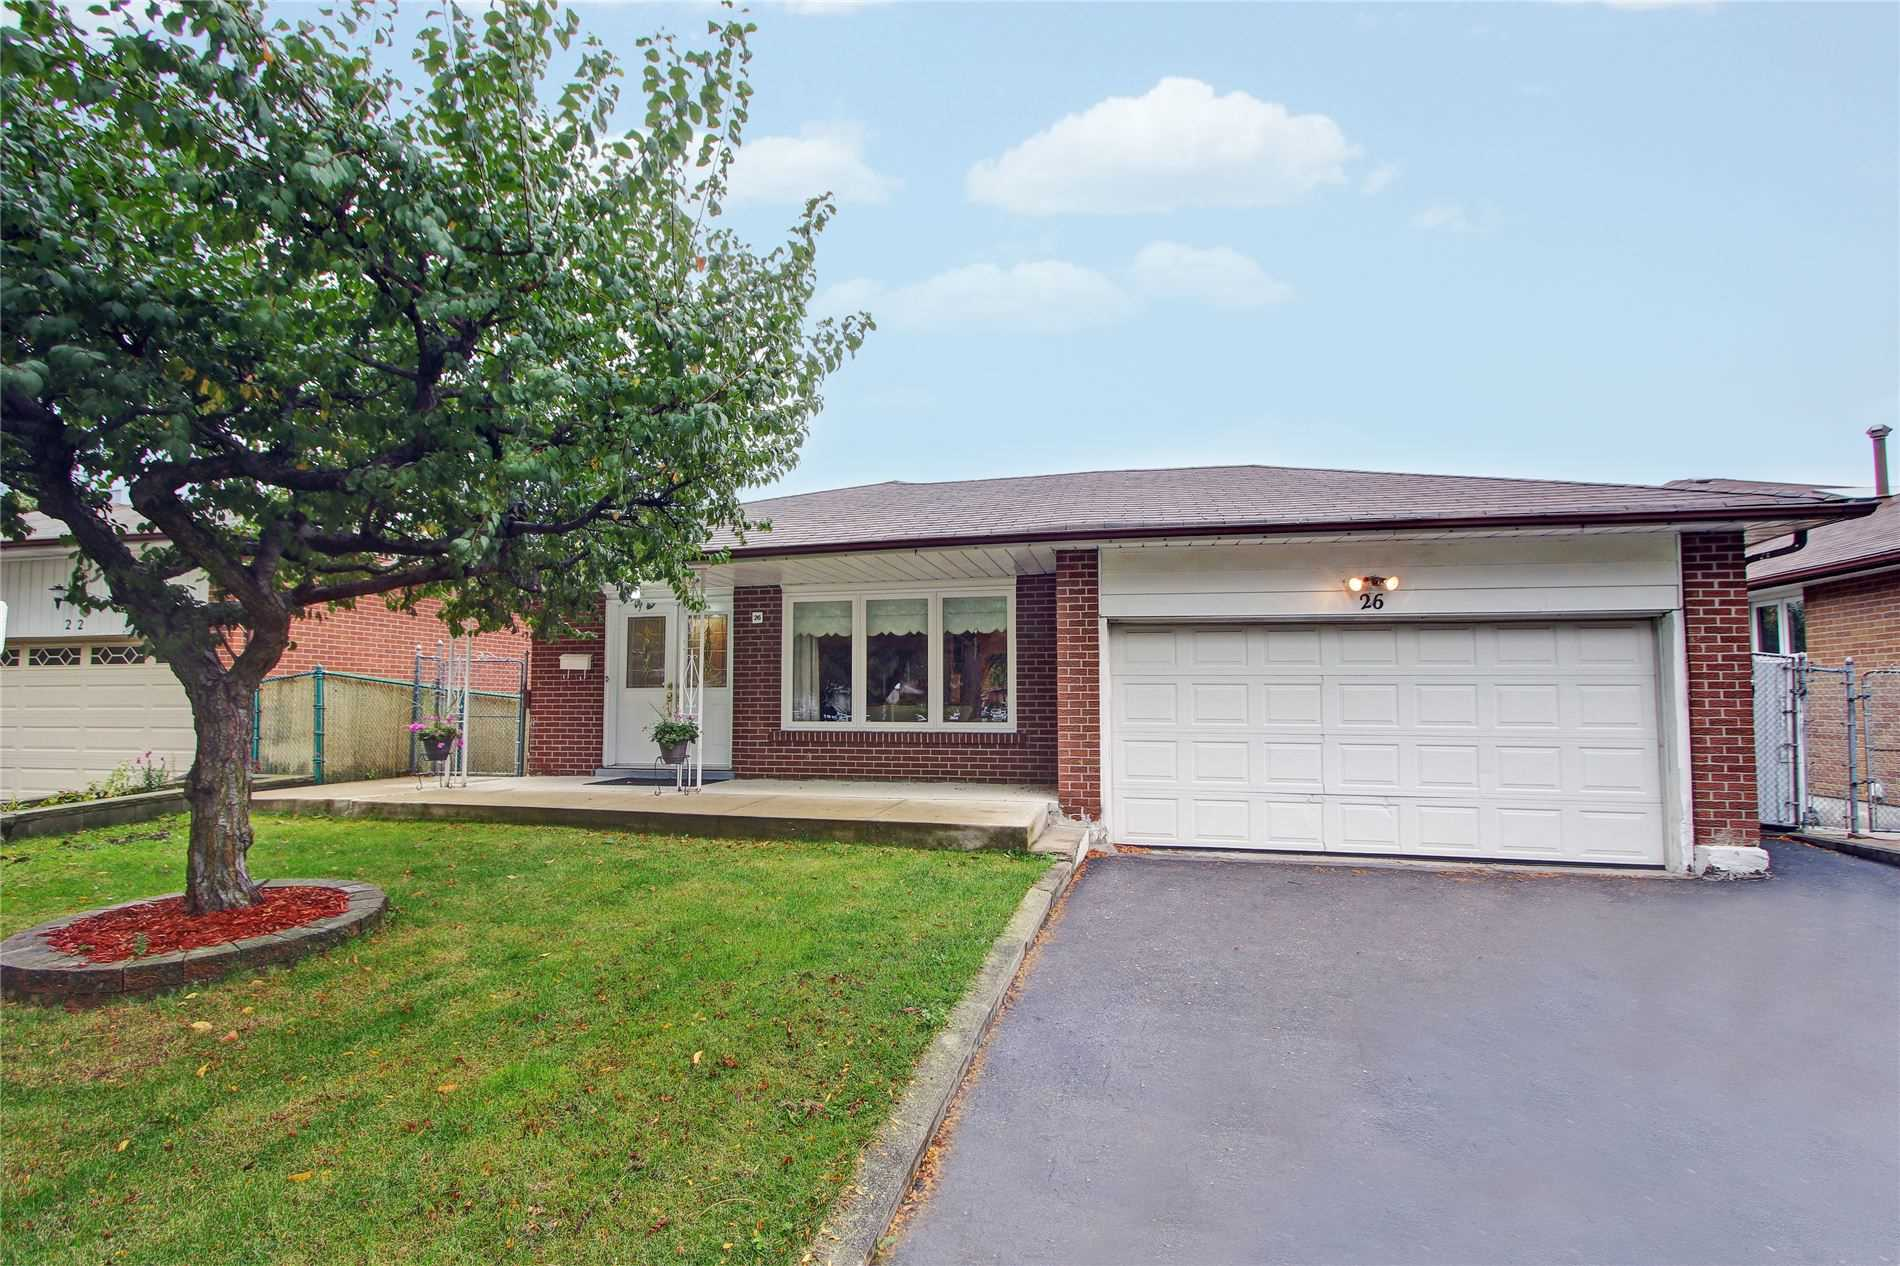 Inactive: 26 Ladner Drive, Toronto, ON